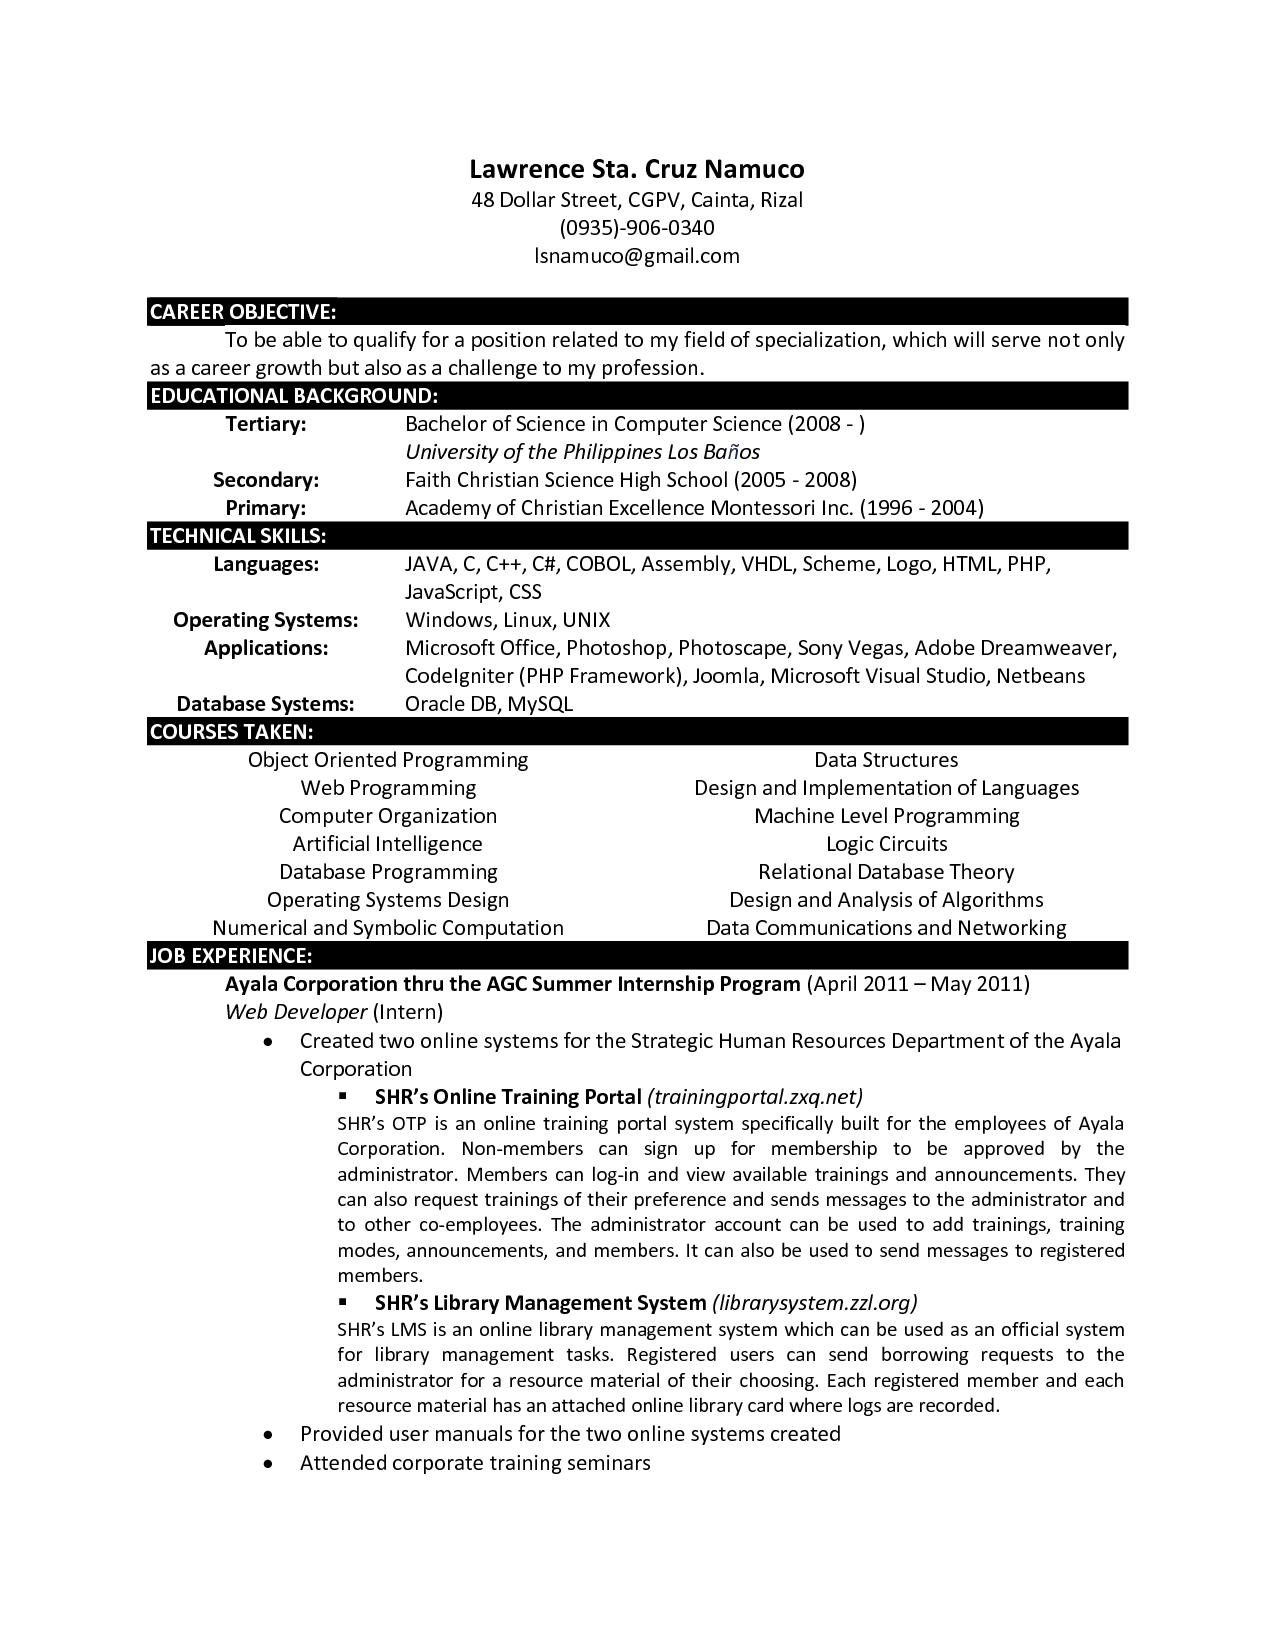 computer science new grad resume examples